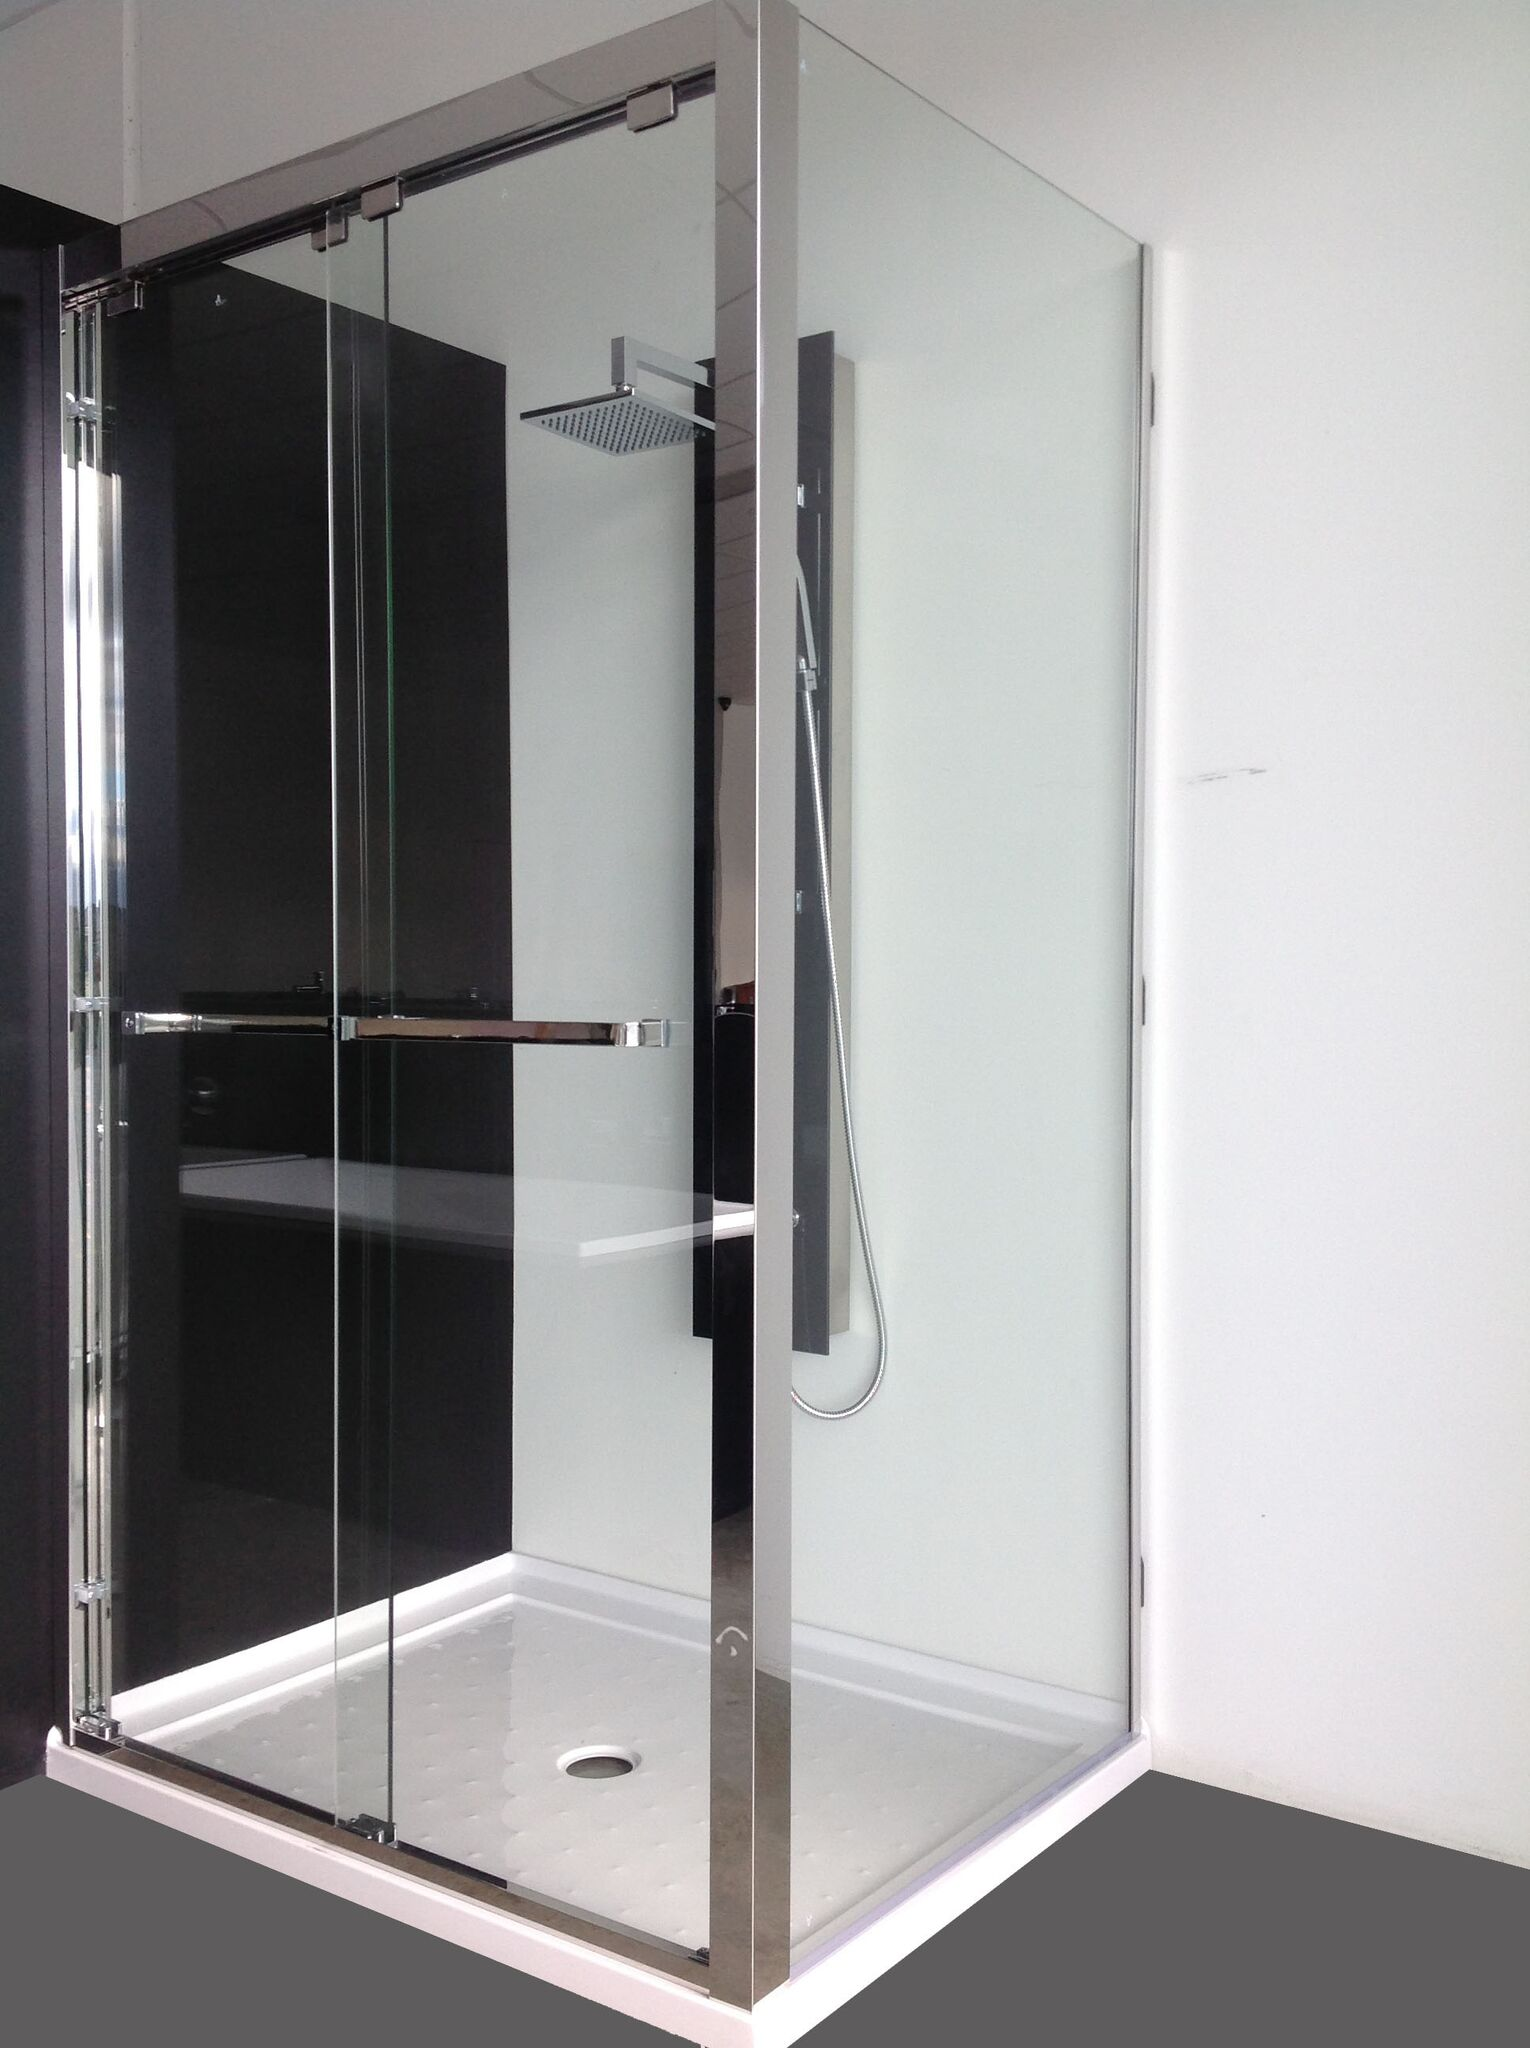 28 1200 corner bath with shower screen best 25 shower 1200 corner bath with shower screen stainless steel sliding shower screen sanyc bathroom